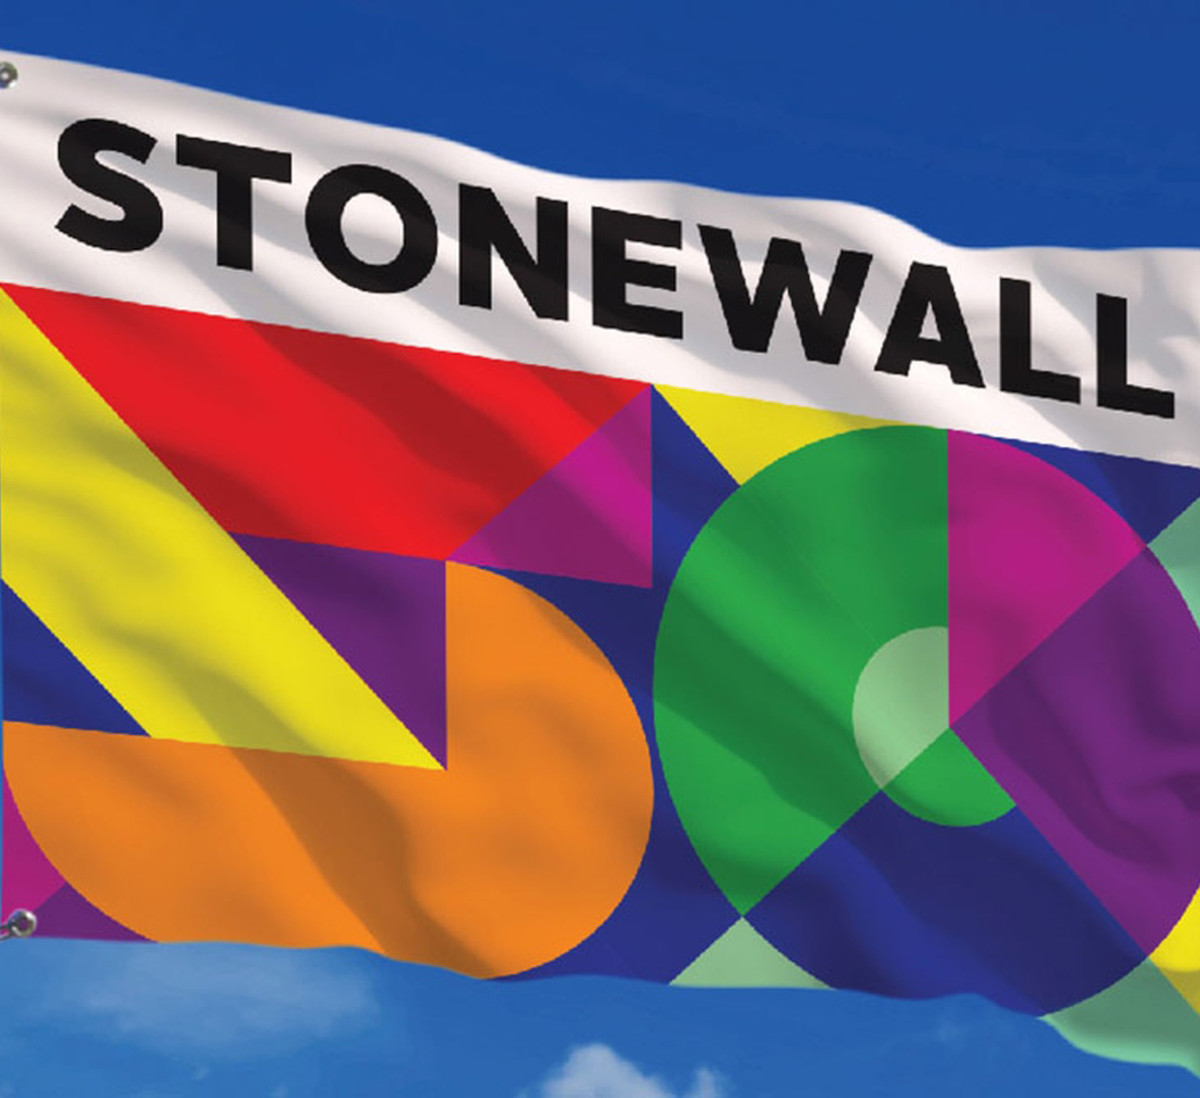 More Than Five Decades Since Stonewall: Happy Pride!